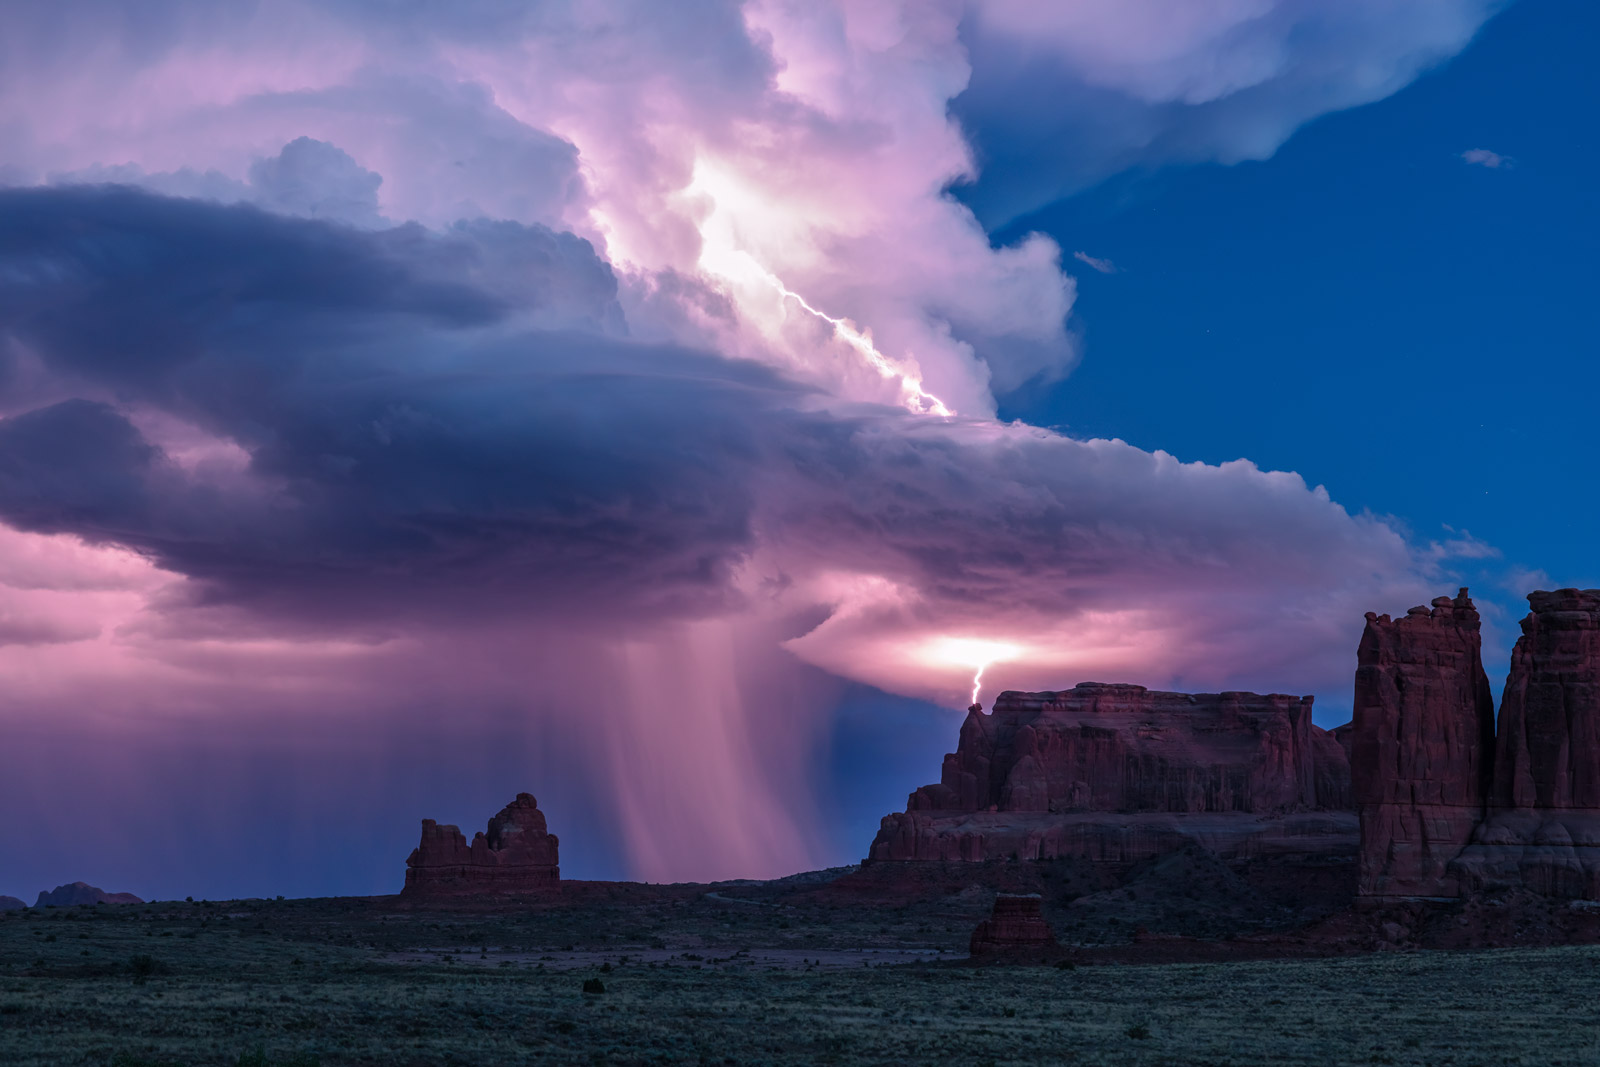 Utah, Arches, National Park, lightning